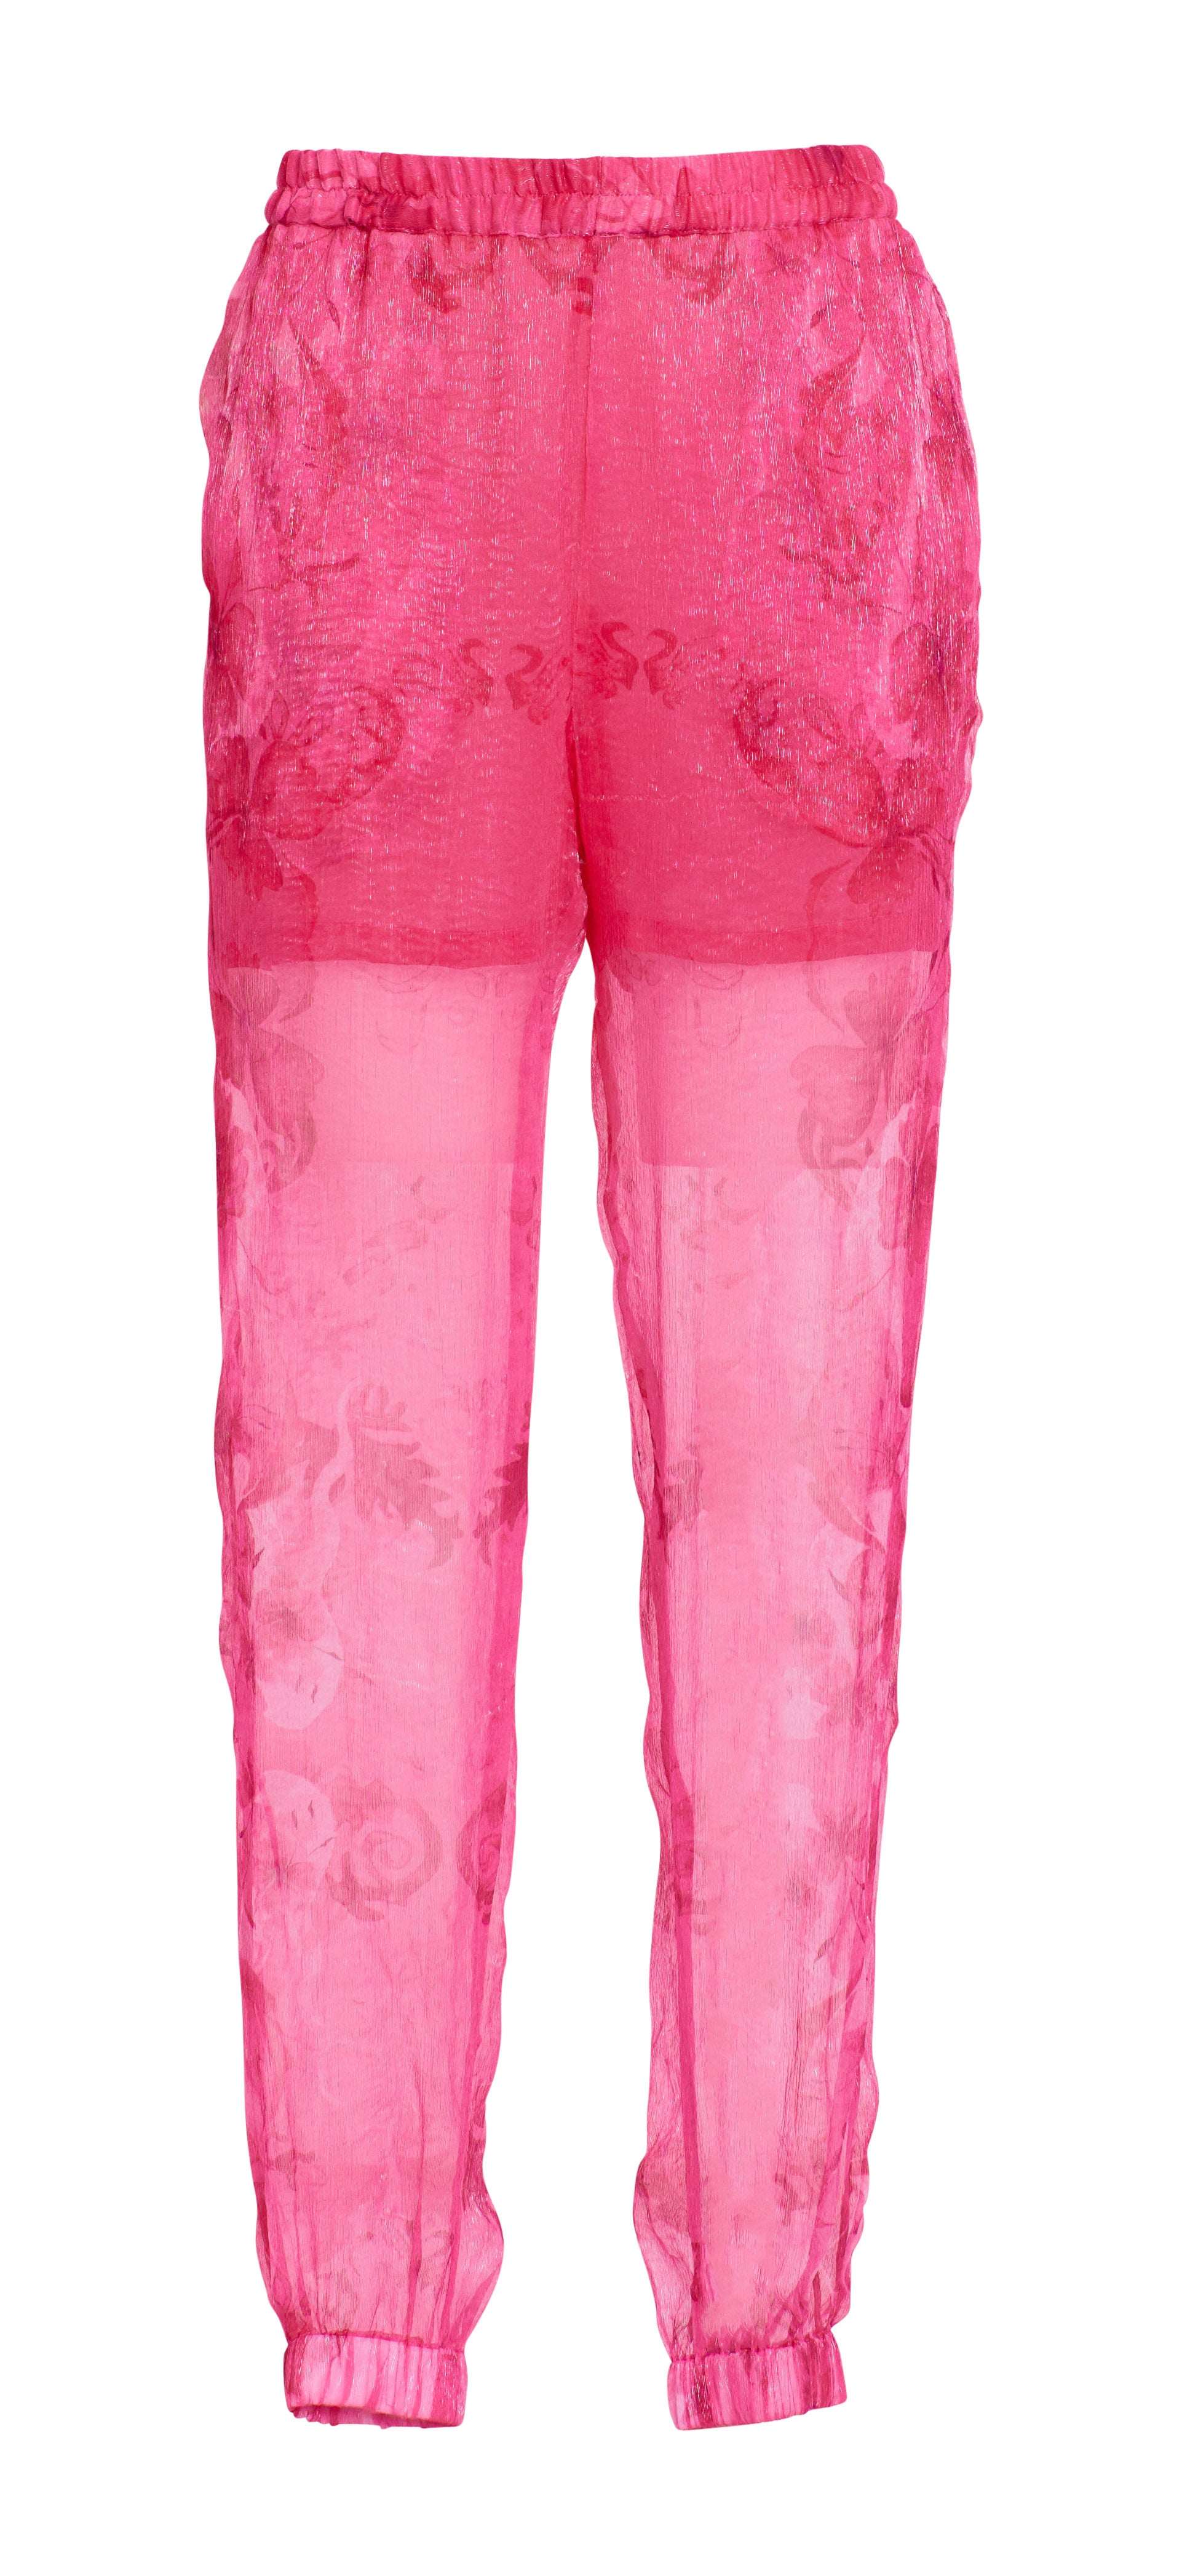 Silk chiffon printed pants